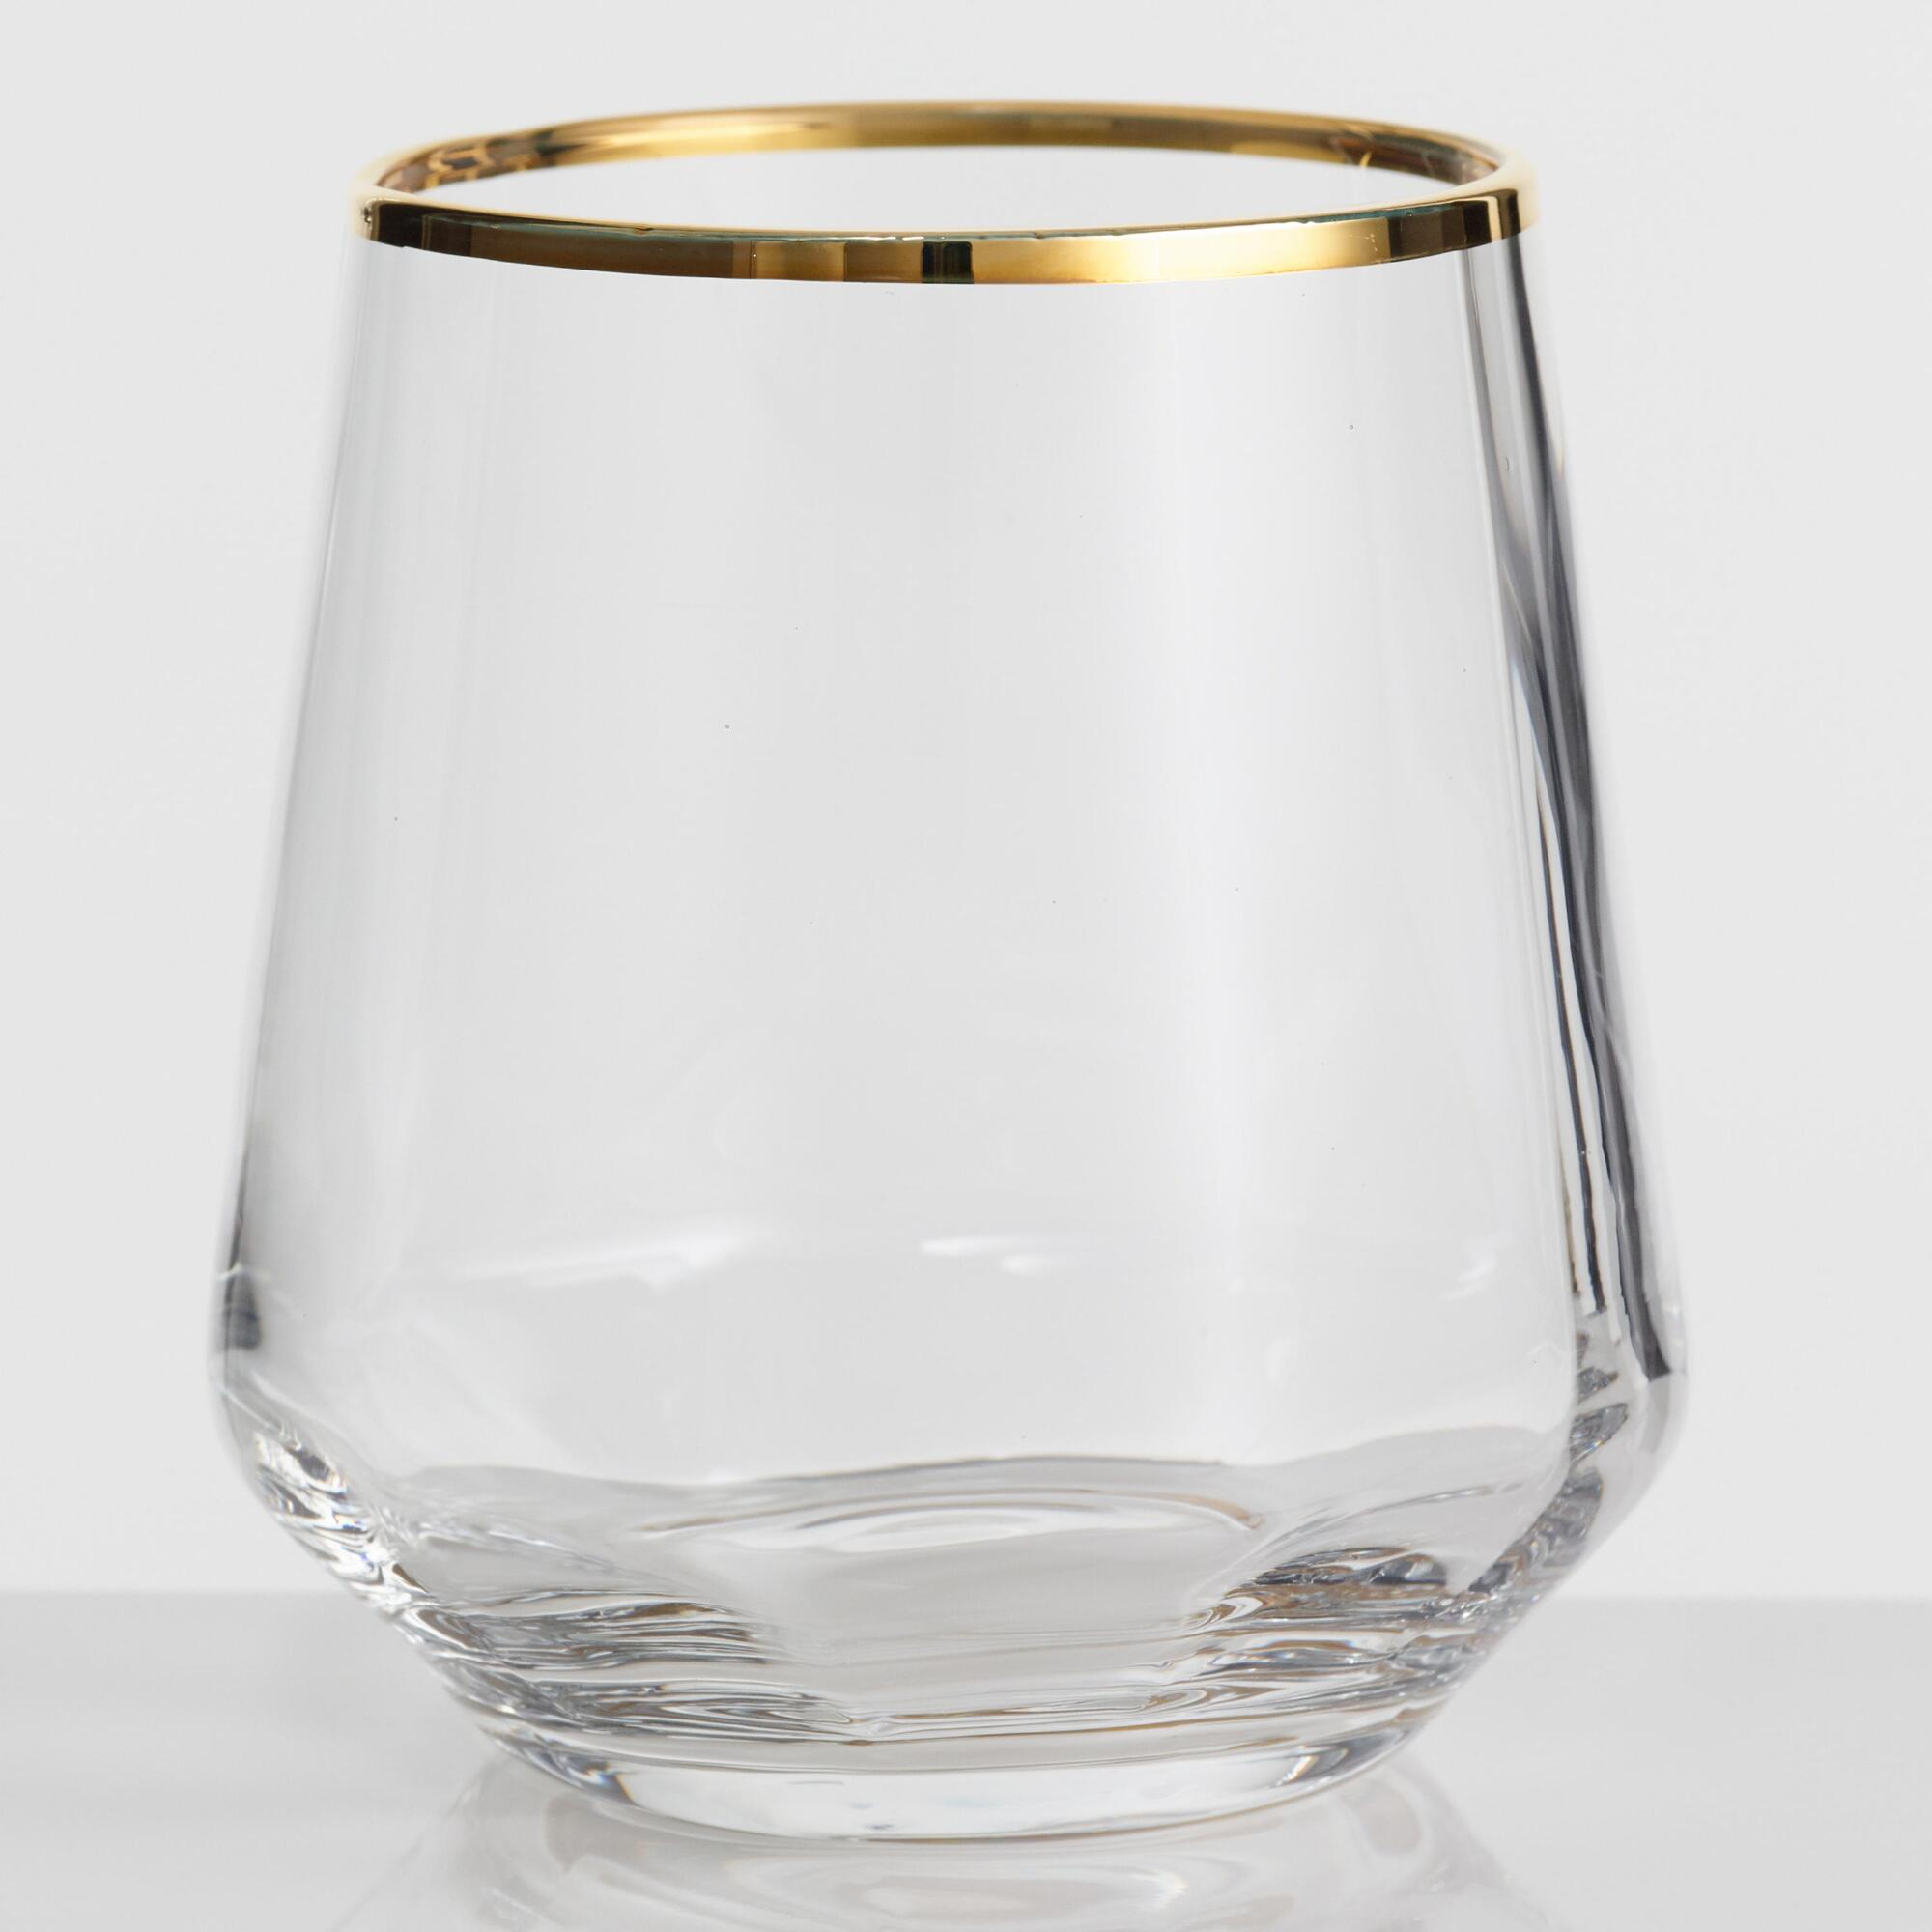 Gold Rim Optic Glass Stemless Wine Glasses Set of 4 by World Market